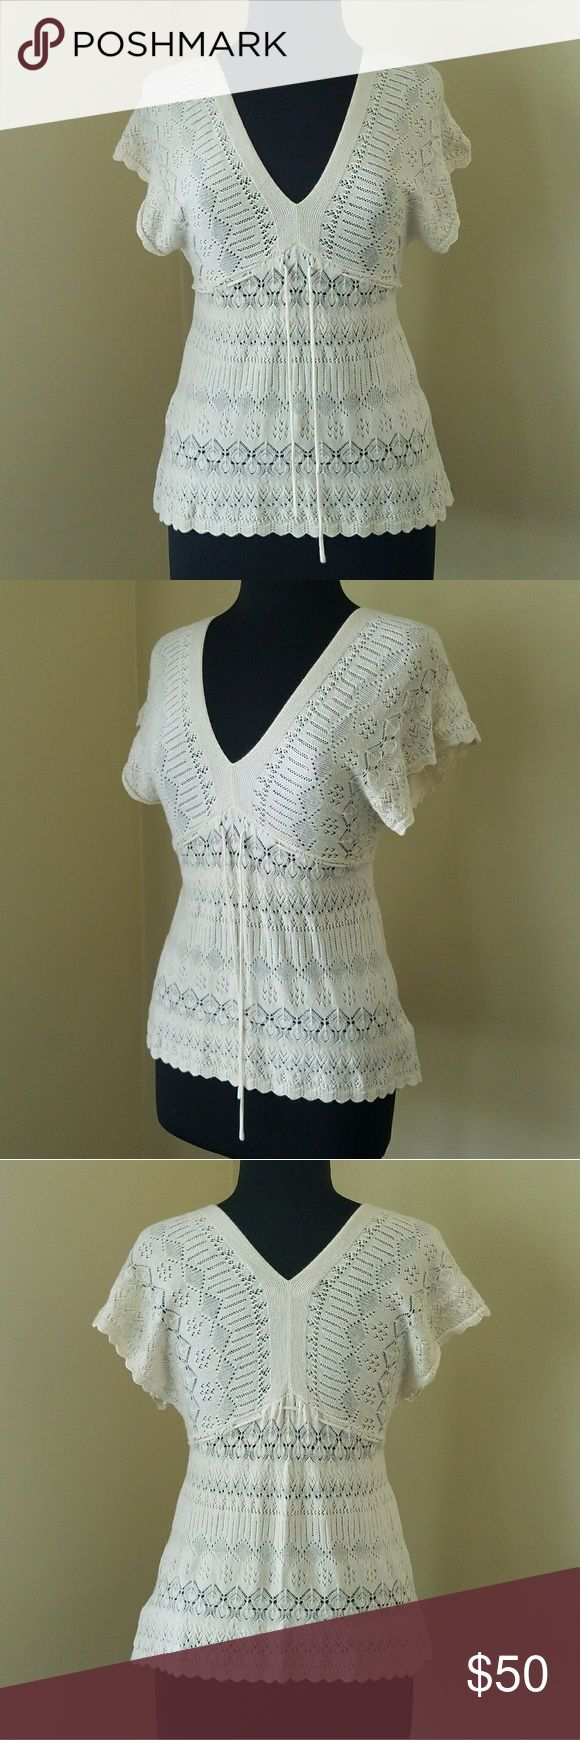 Anthropologie, XS, Knitted & Knotted Blouse Like New! Flawless condition.  Light weight knit top with beautiful detail. Cream on color with batwing sleeves and pullstring at waist.  Size XS by Knitted & Knotted from Anthropologie. Anthropologie Tops Blouses